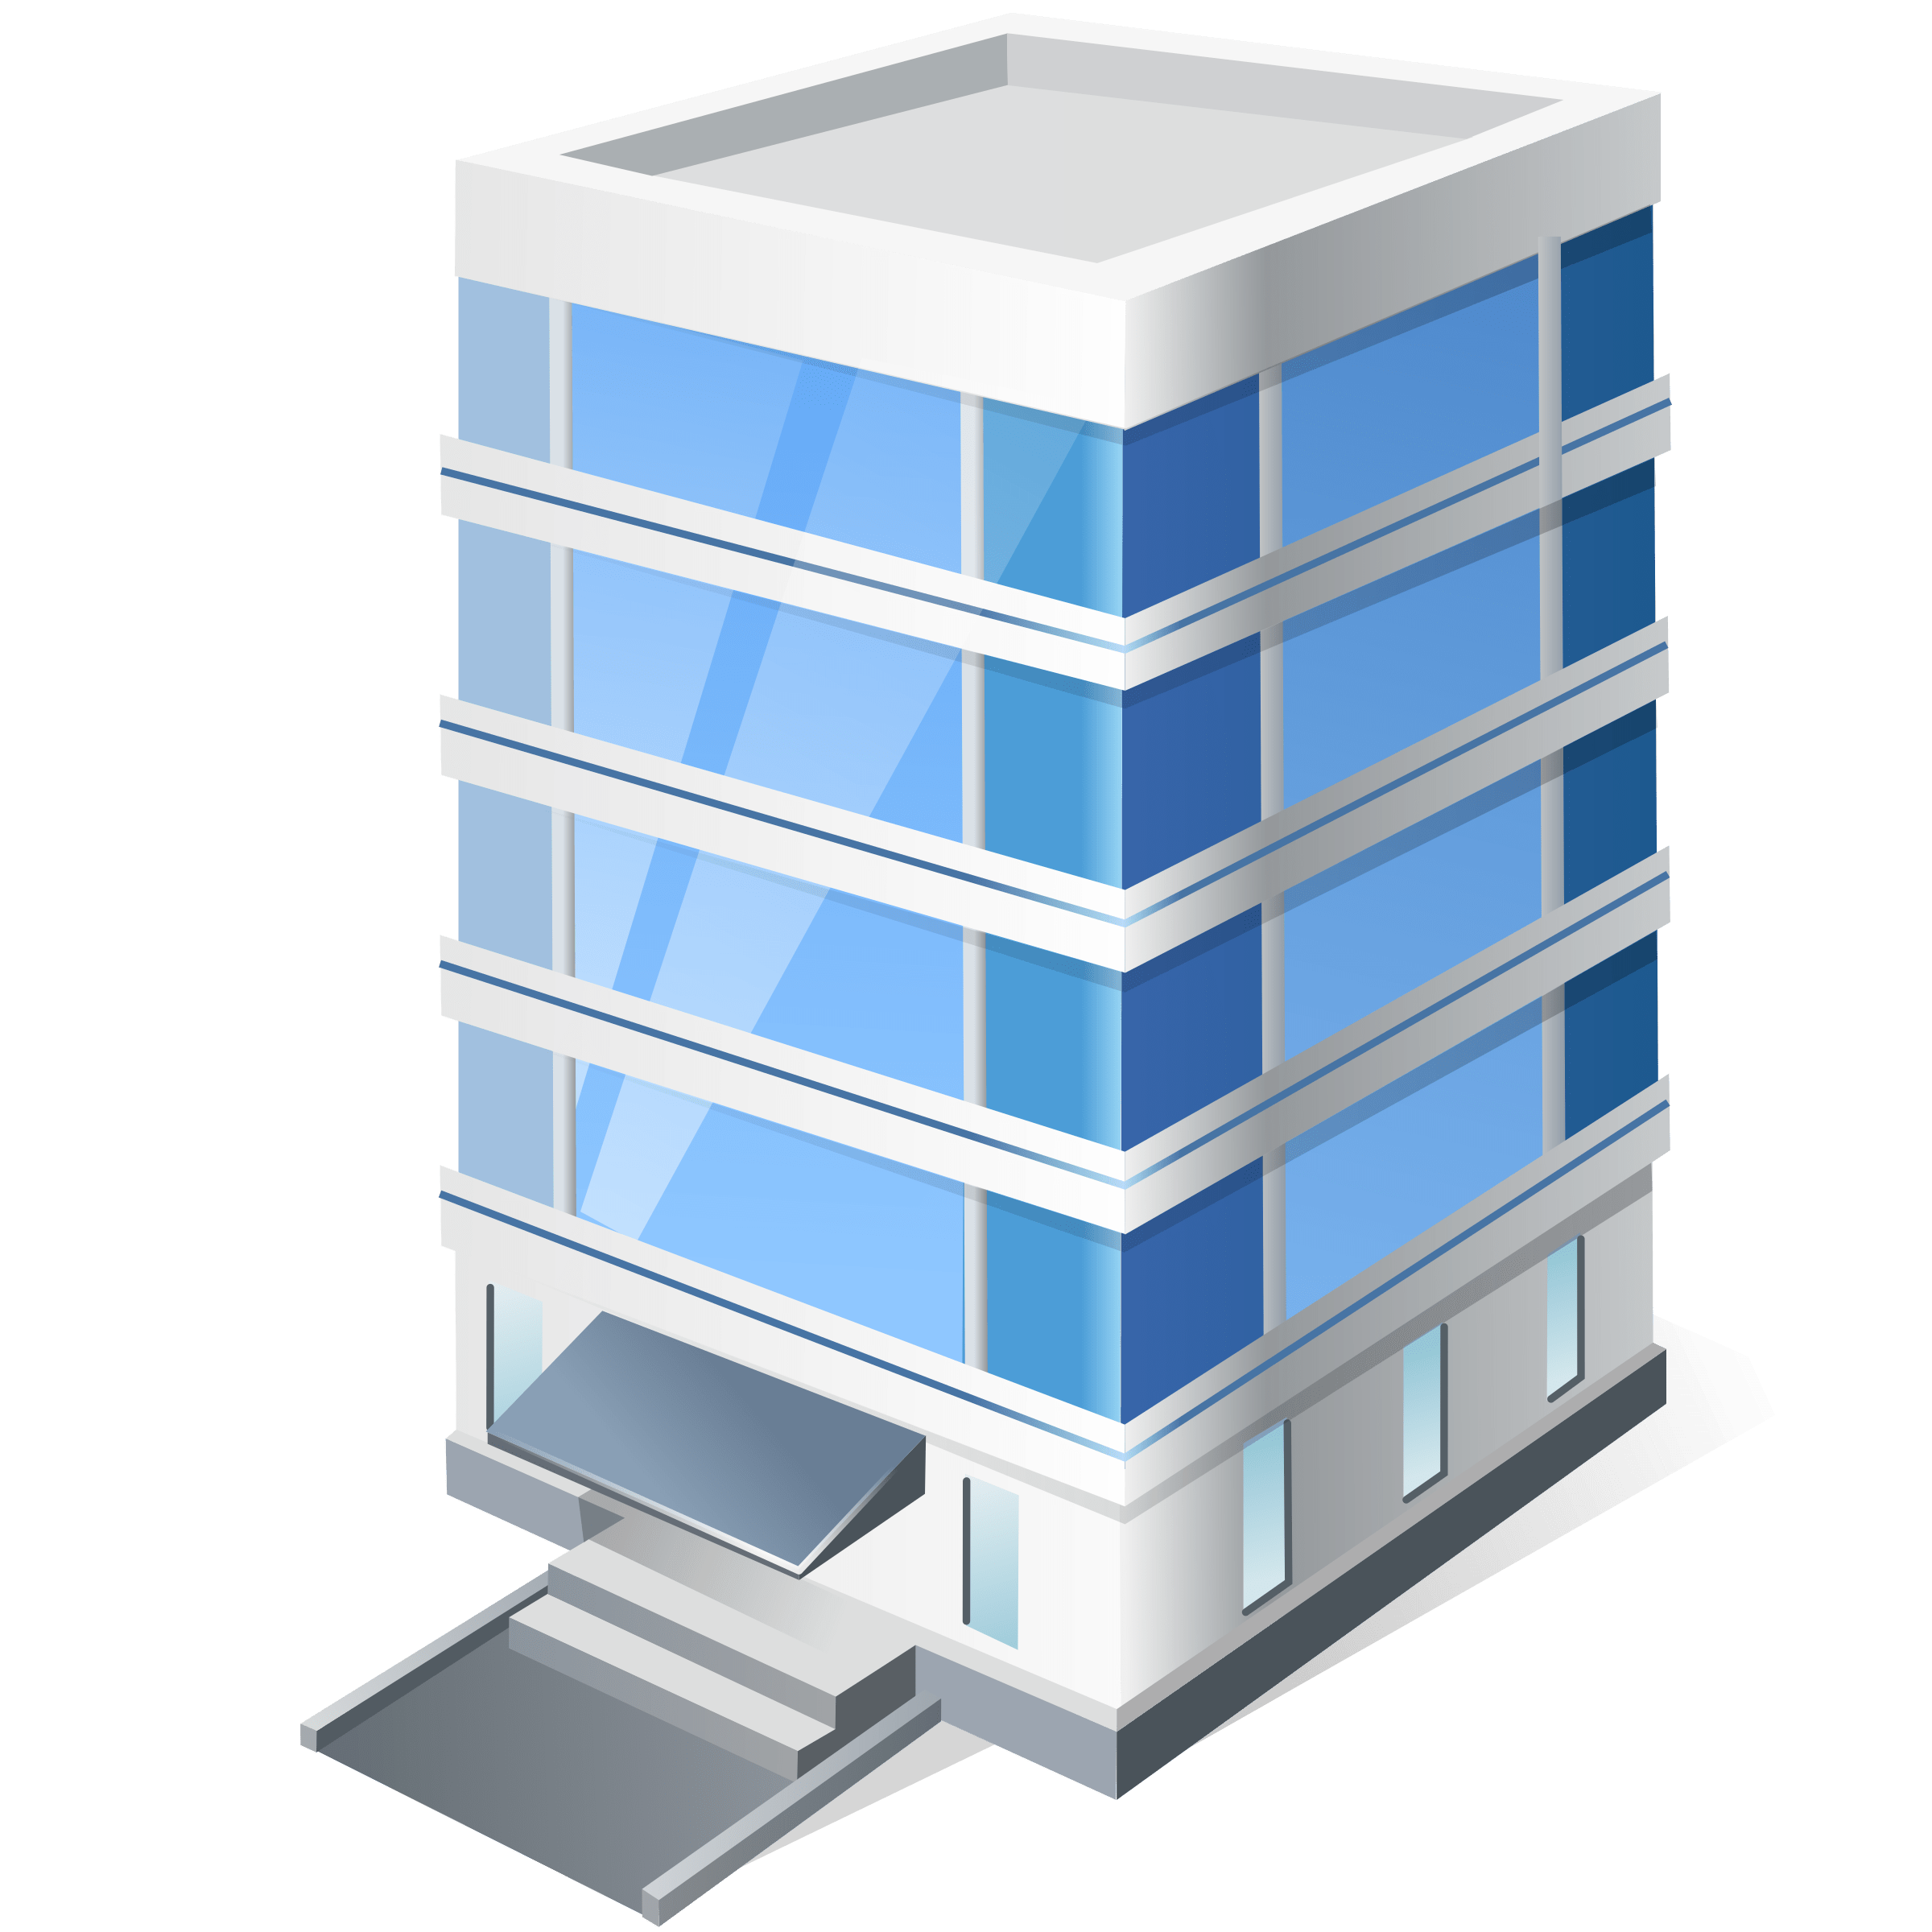 office building clipart transparent png stickpng rh stickpng com building images clipart building clip art free downloads